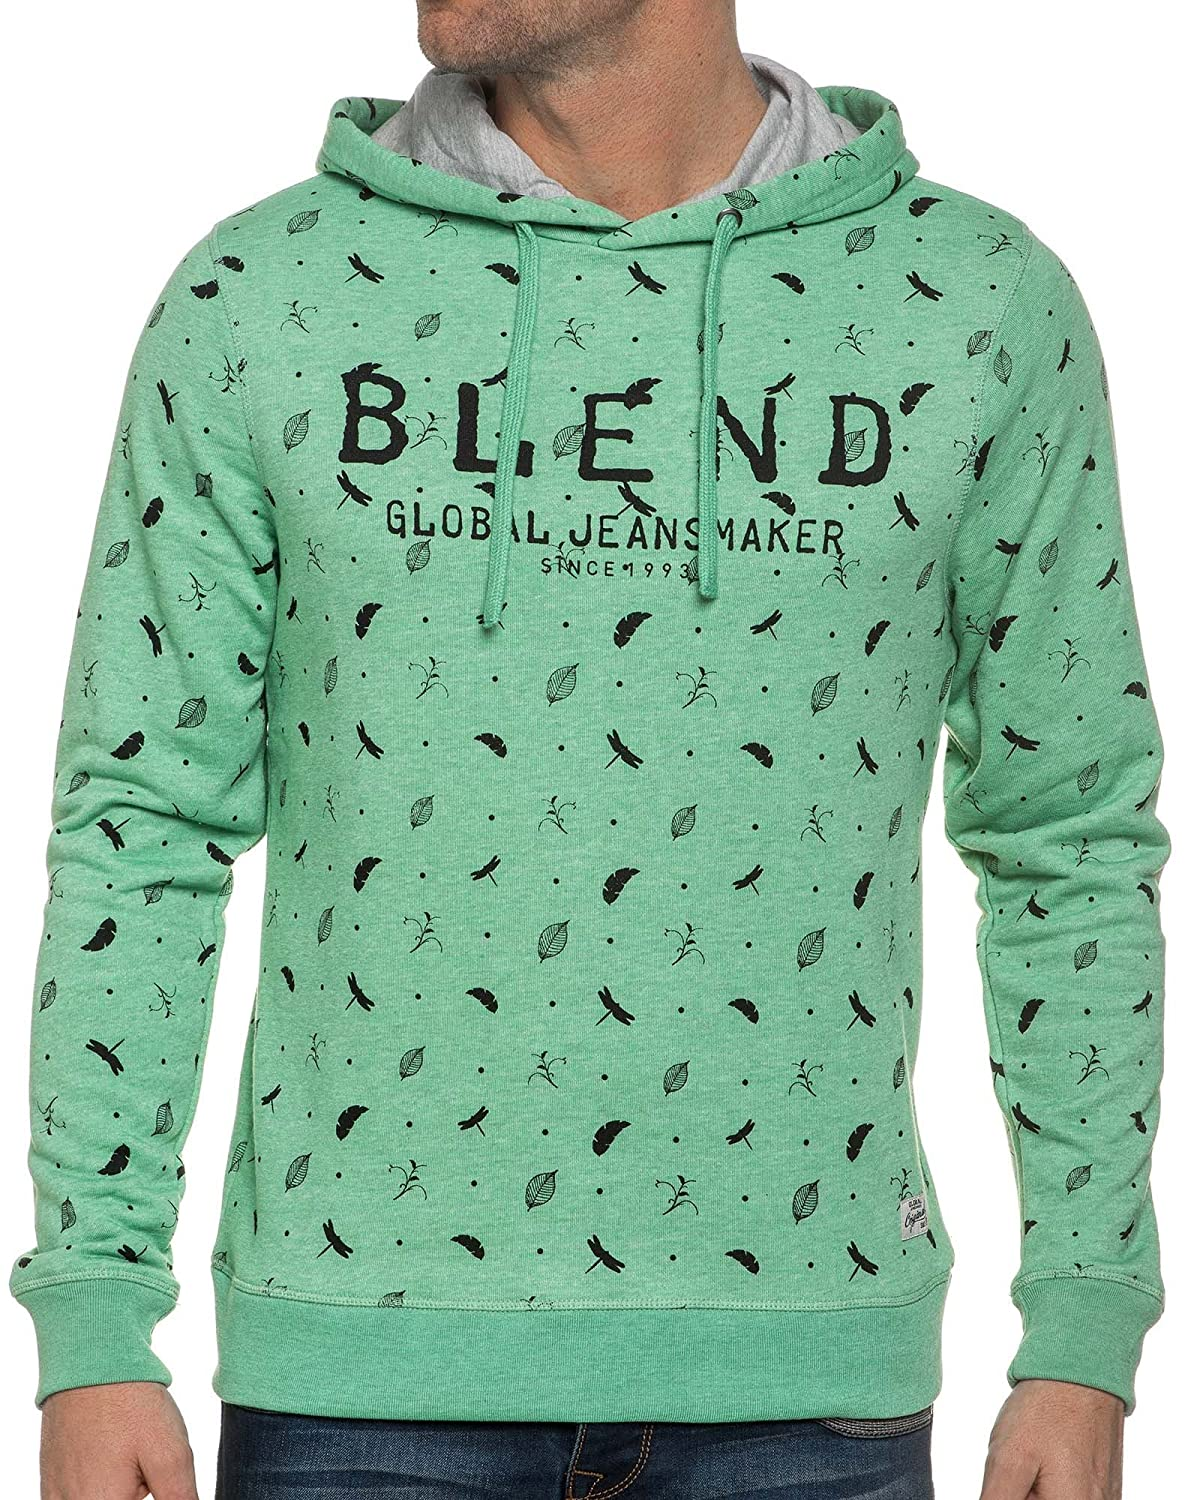 Blend - Sweat Hoodie A Green Washed Appearance